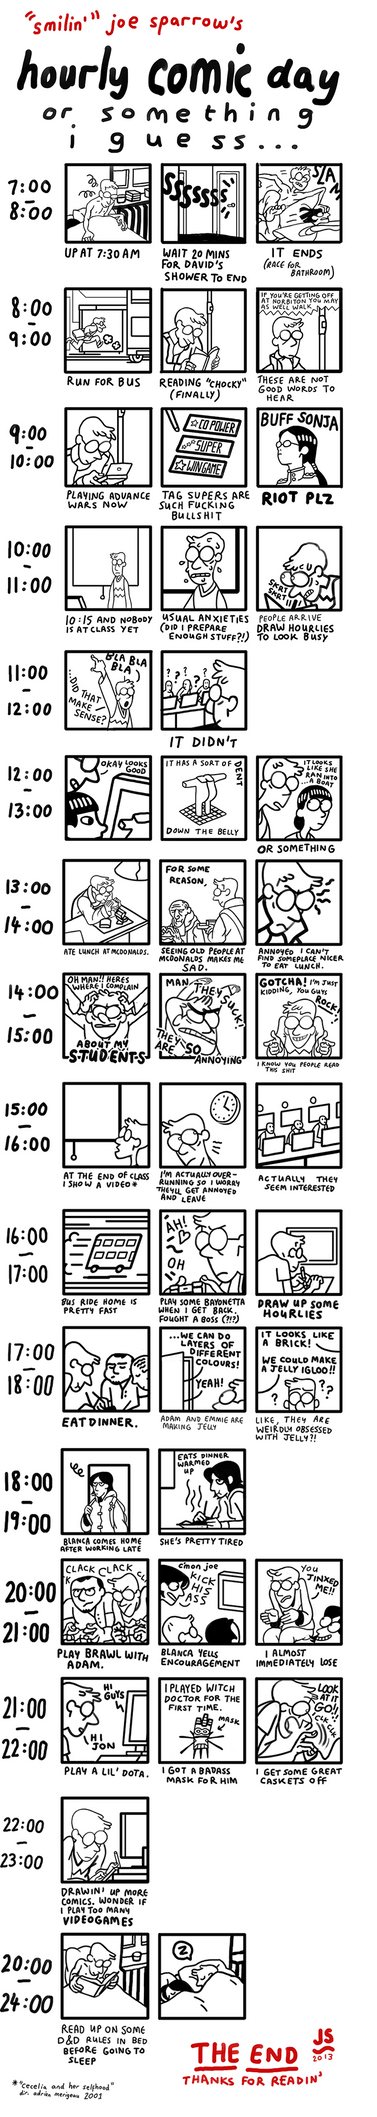 Hourly Comic Day 2012 by facesfilledwithflies